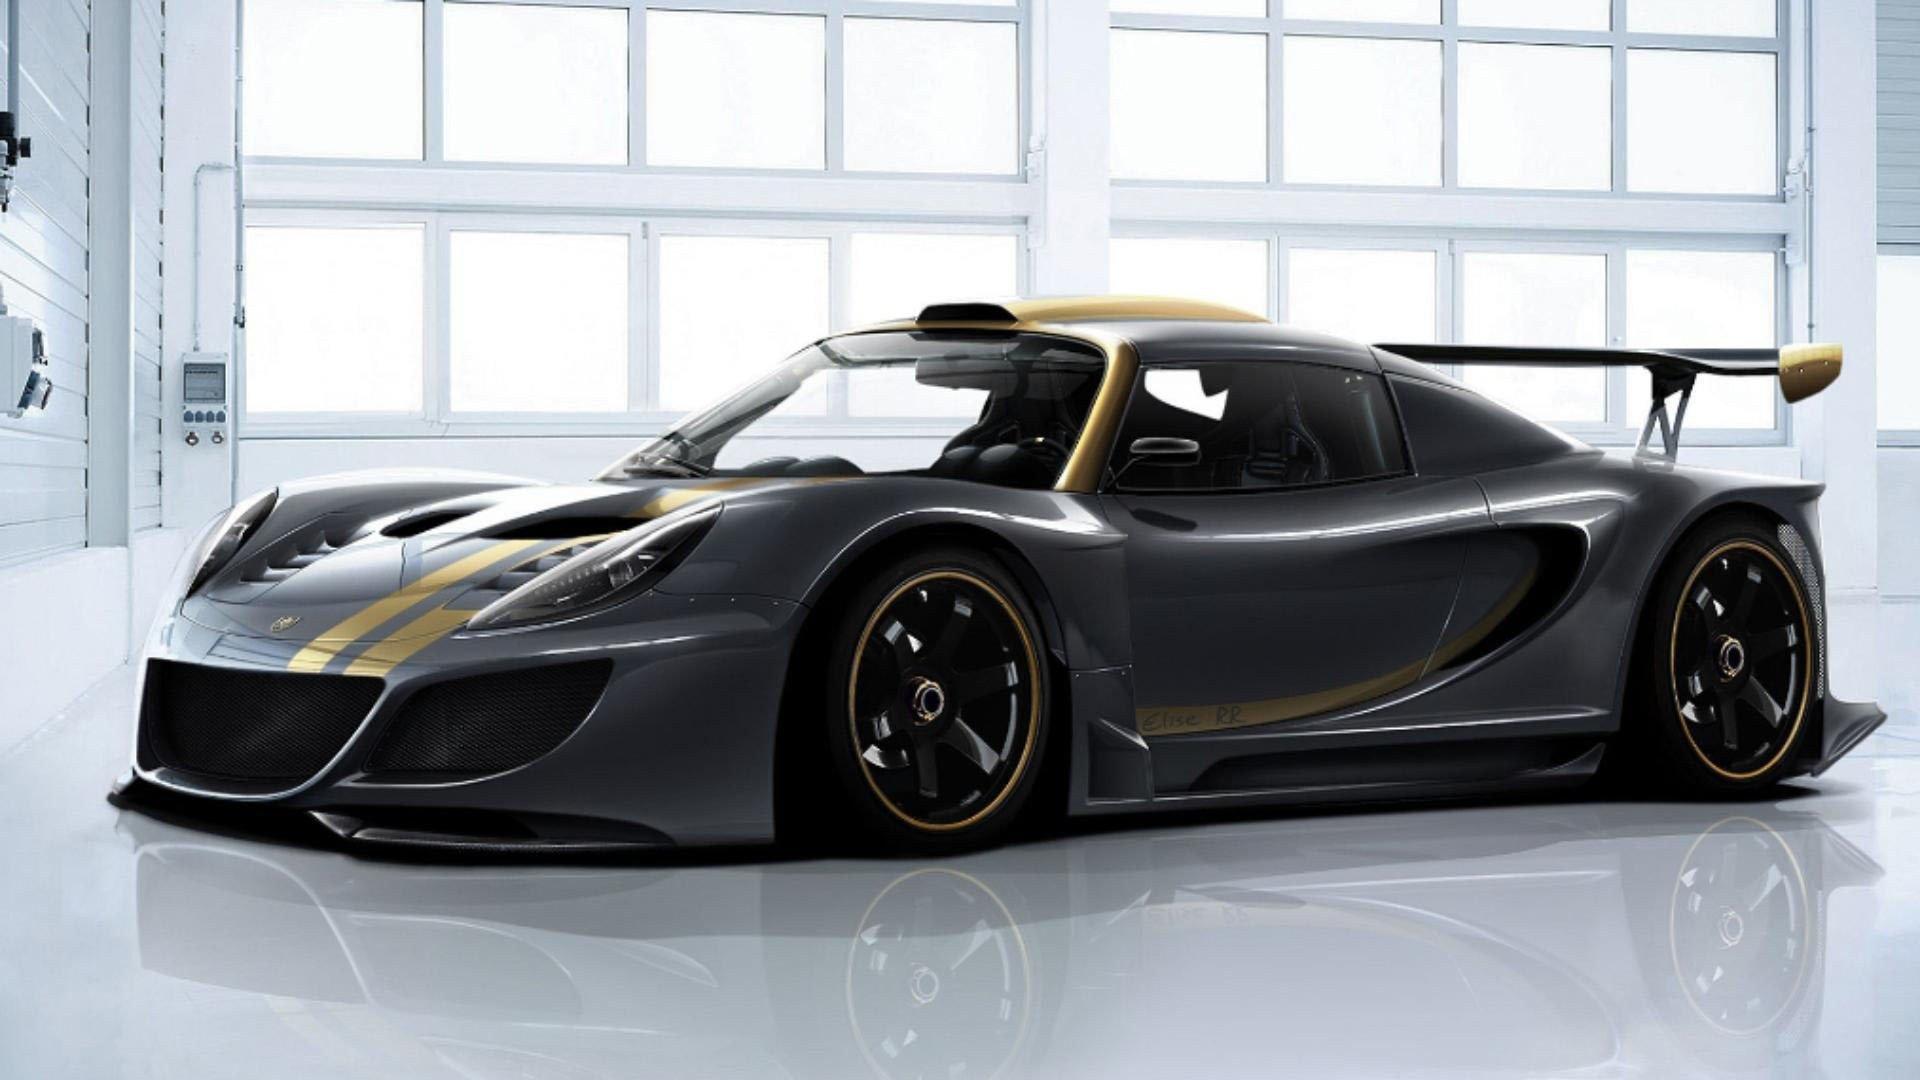 Latest Lotus Dlc Speeds Onto Project Cars Today Free Download